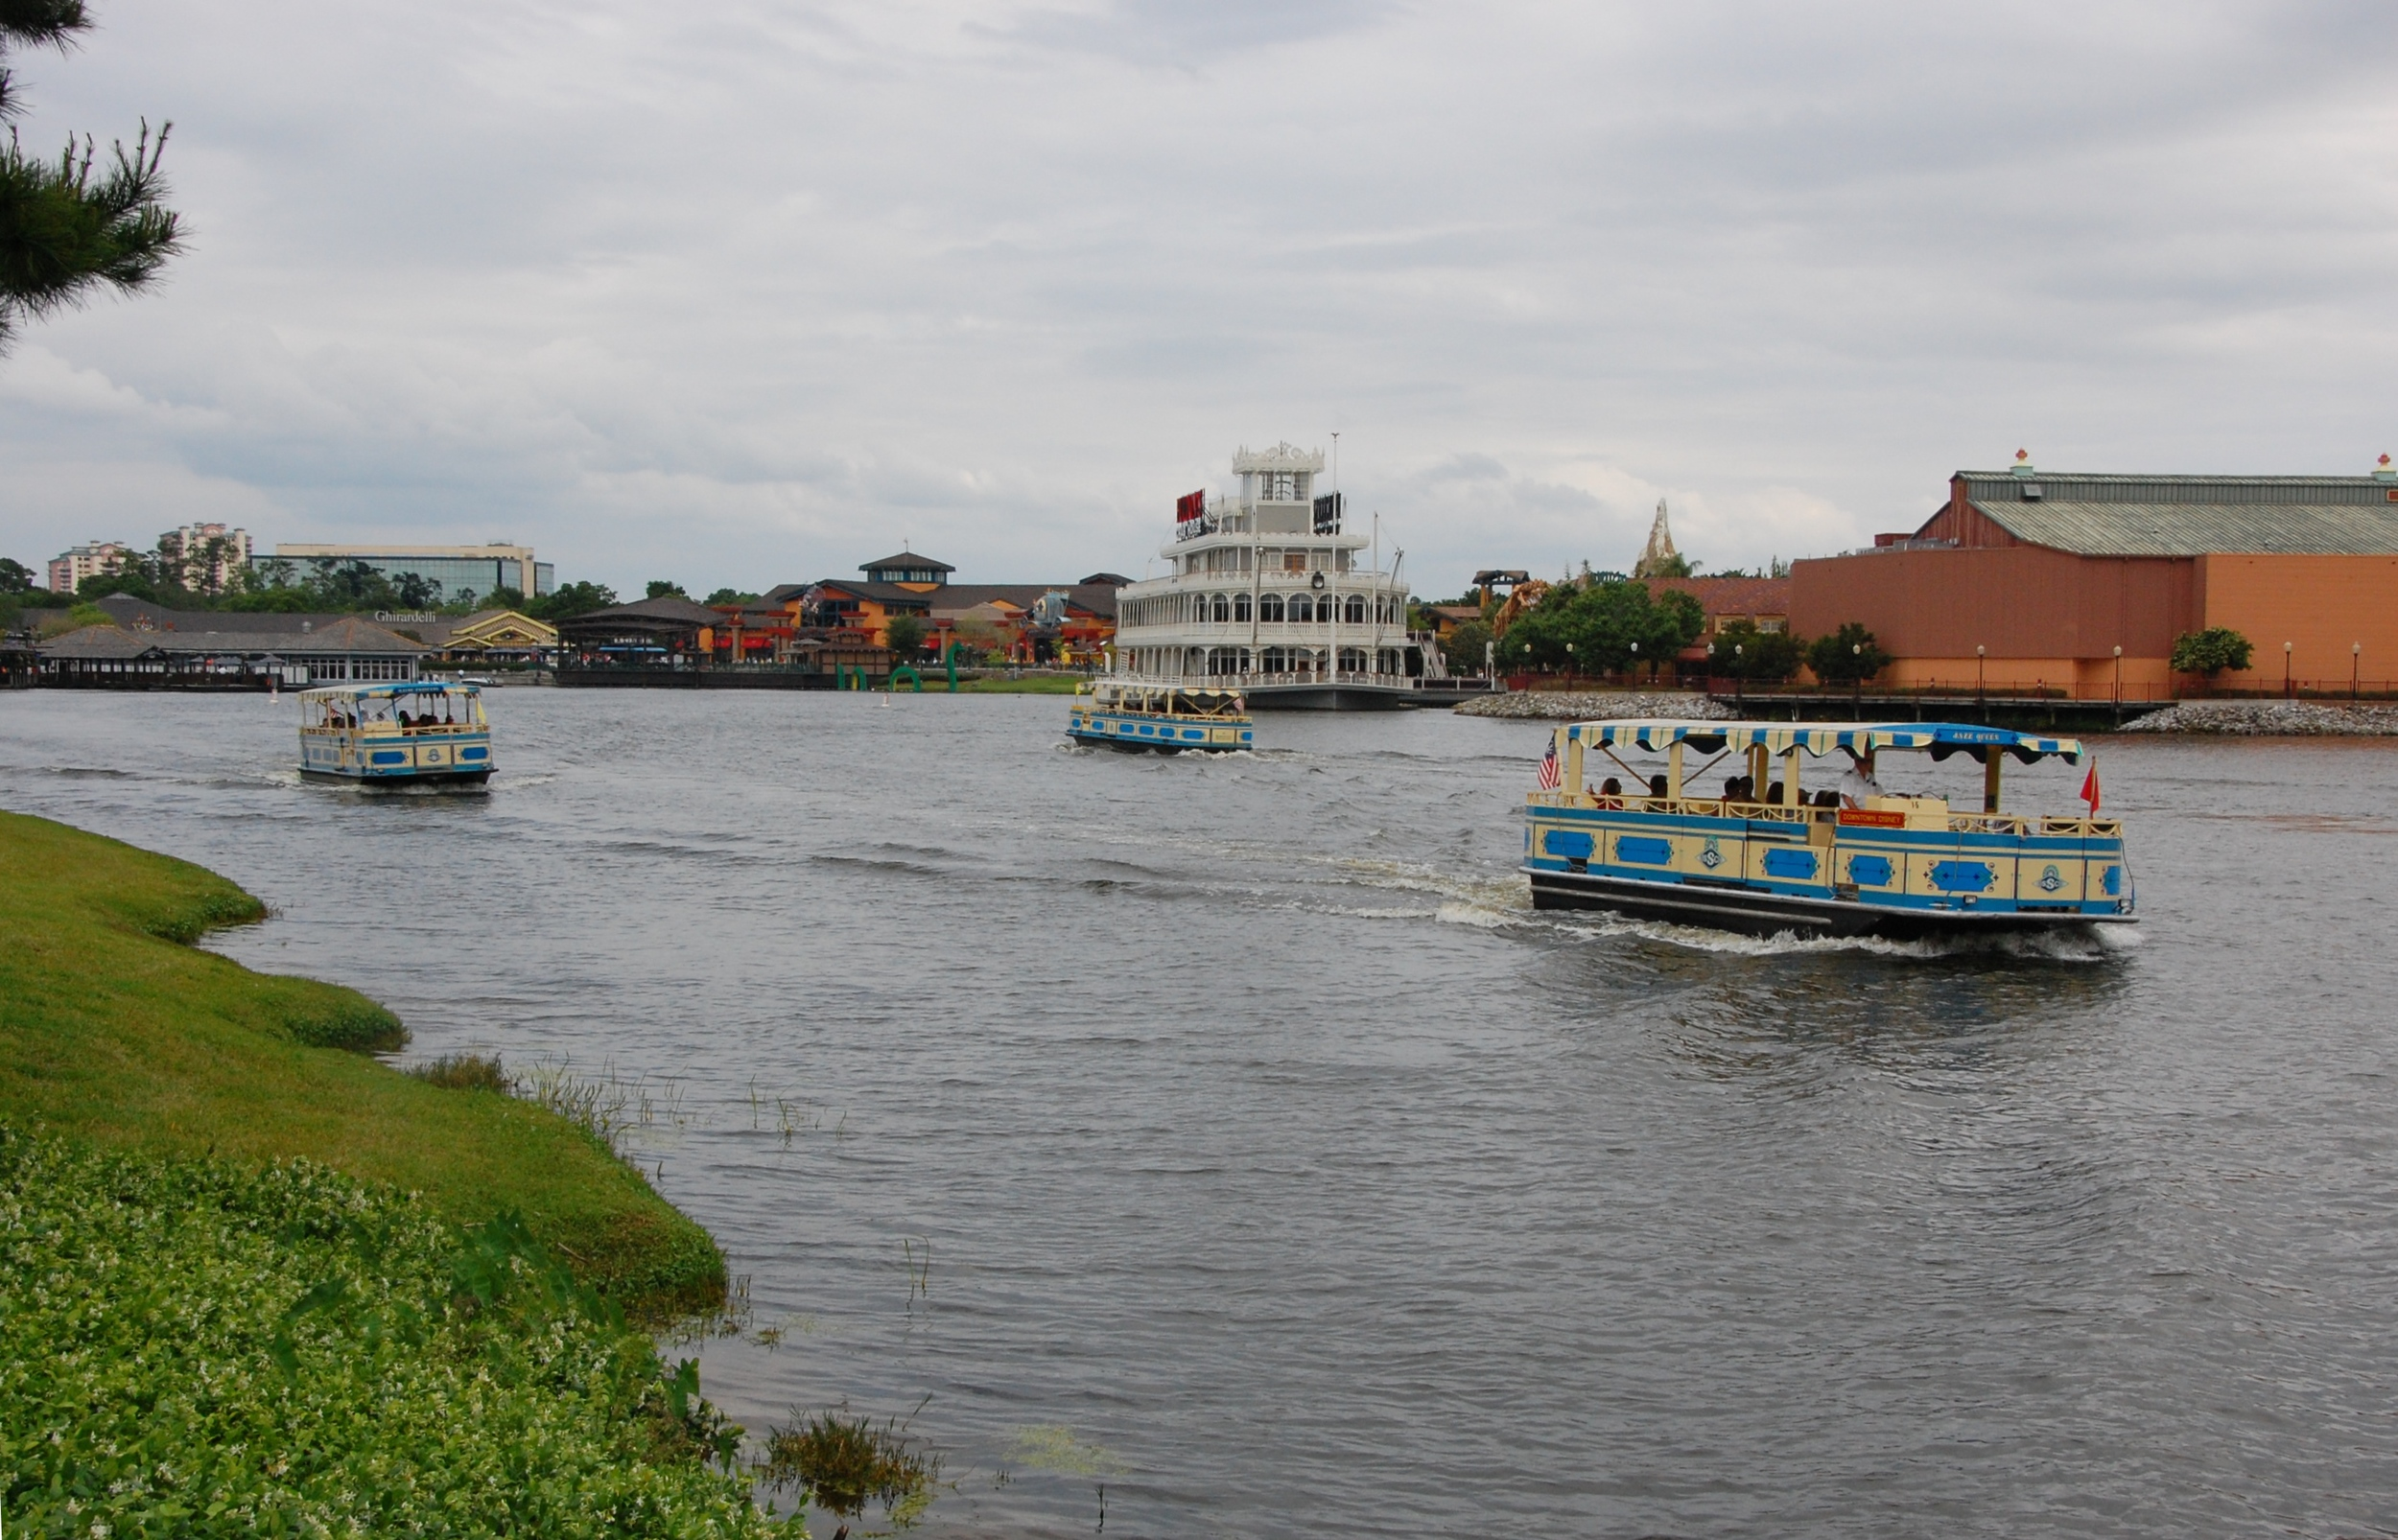 Disney's Saratoga Springs boat transportation to Downtown Disney, Old Key West, Port Orleans French Quarter and Port Orleans Riverside resorts providing lots of dining and entertainment options